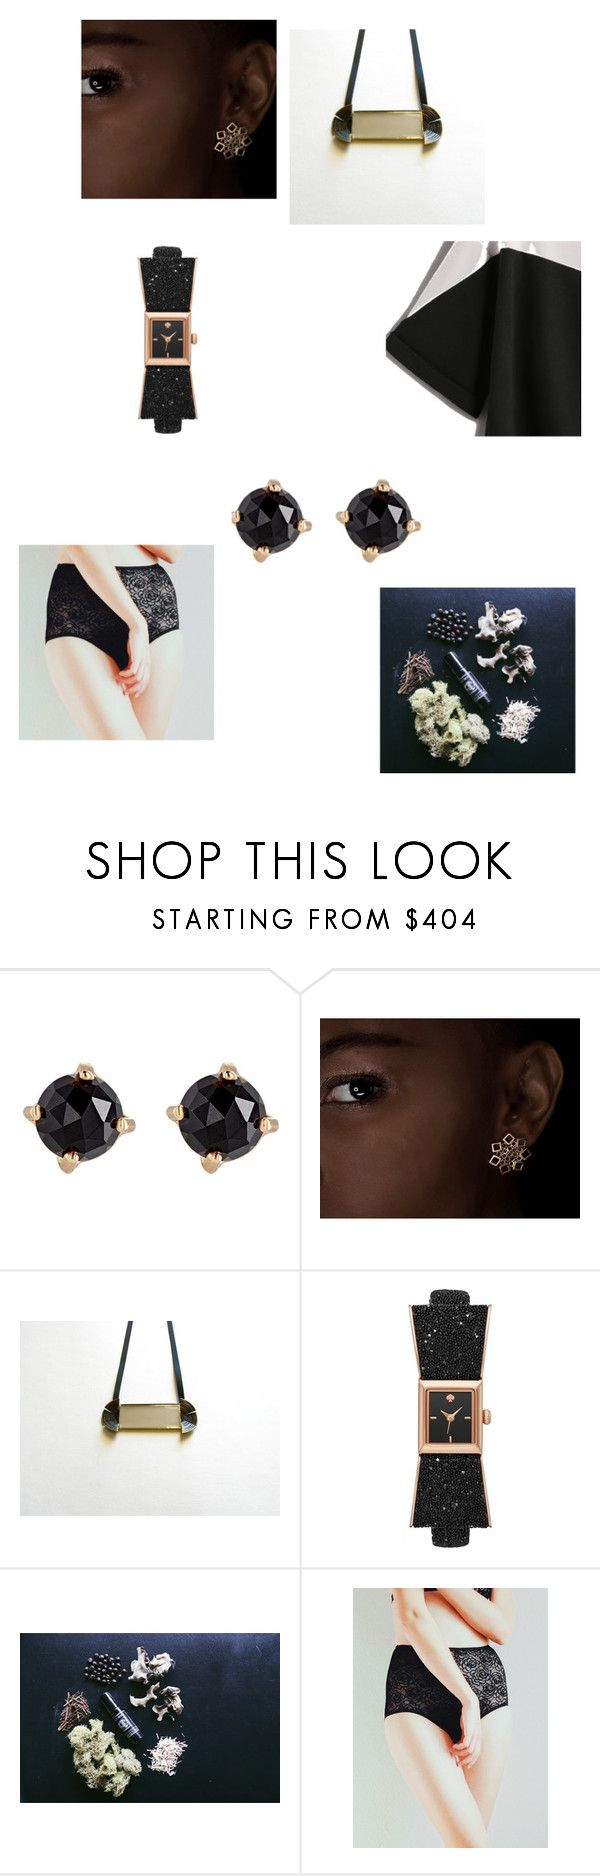 """""""Trends"""" by xena-style ❤ liked on Polyvore featuring Irene Neuwirth and Kate Spade"""